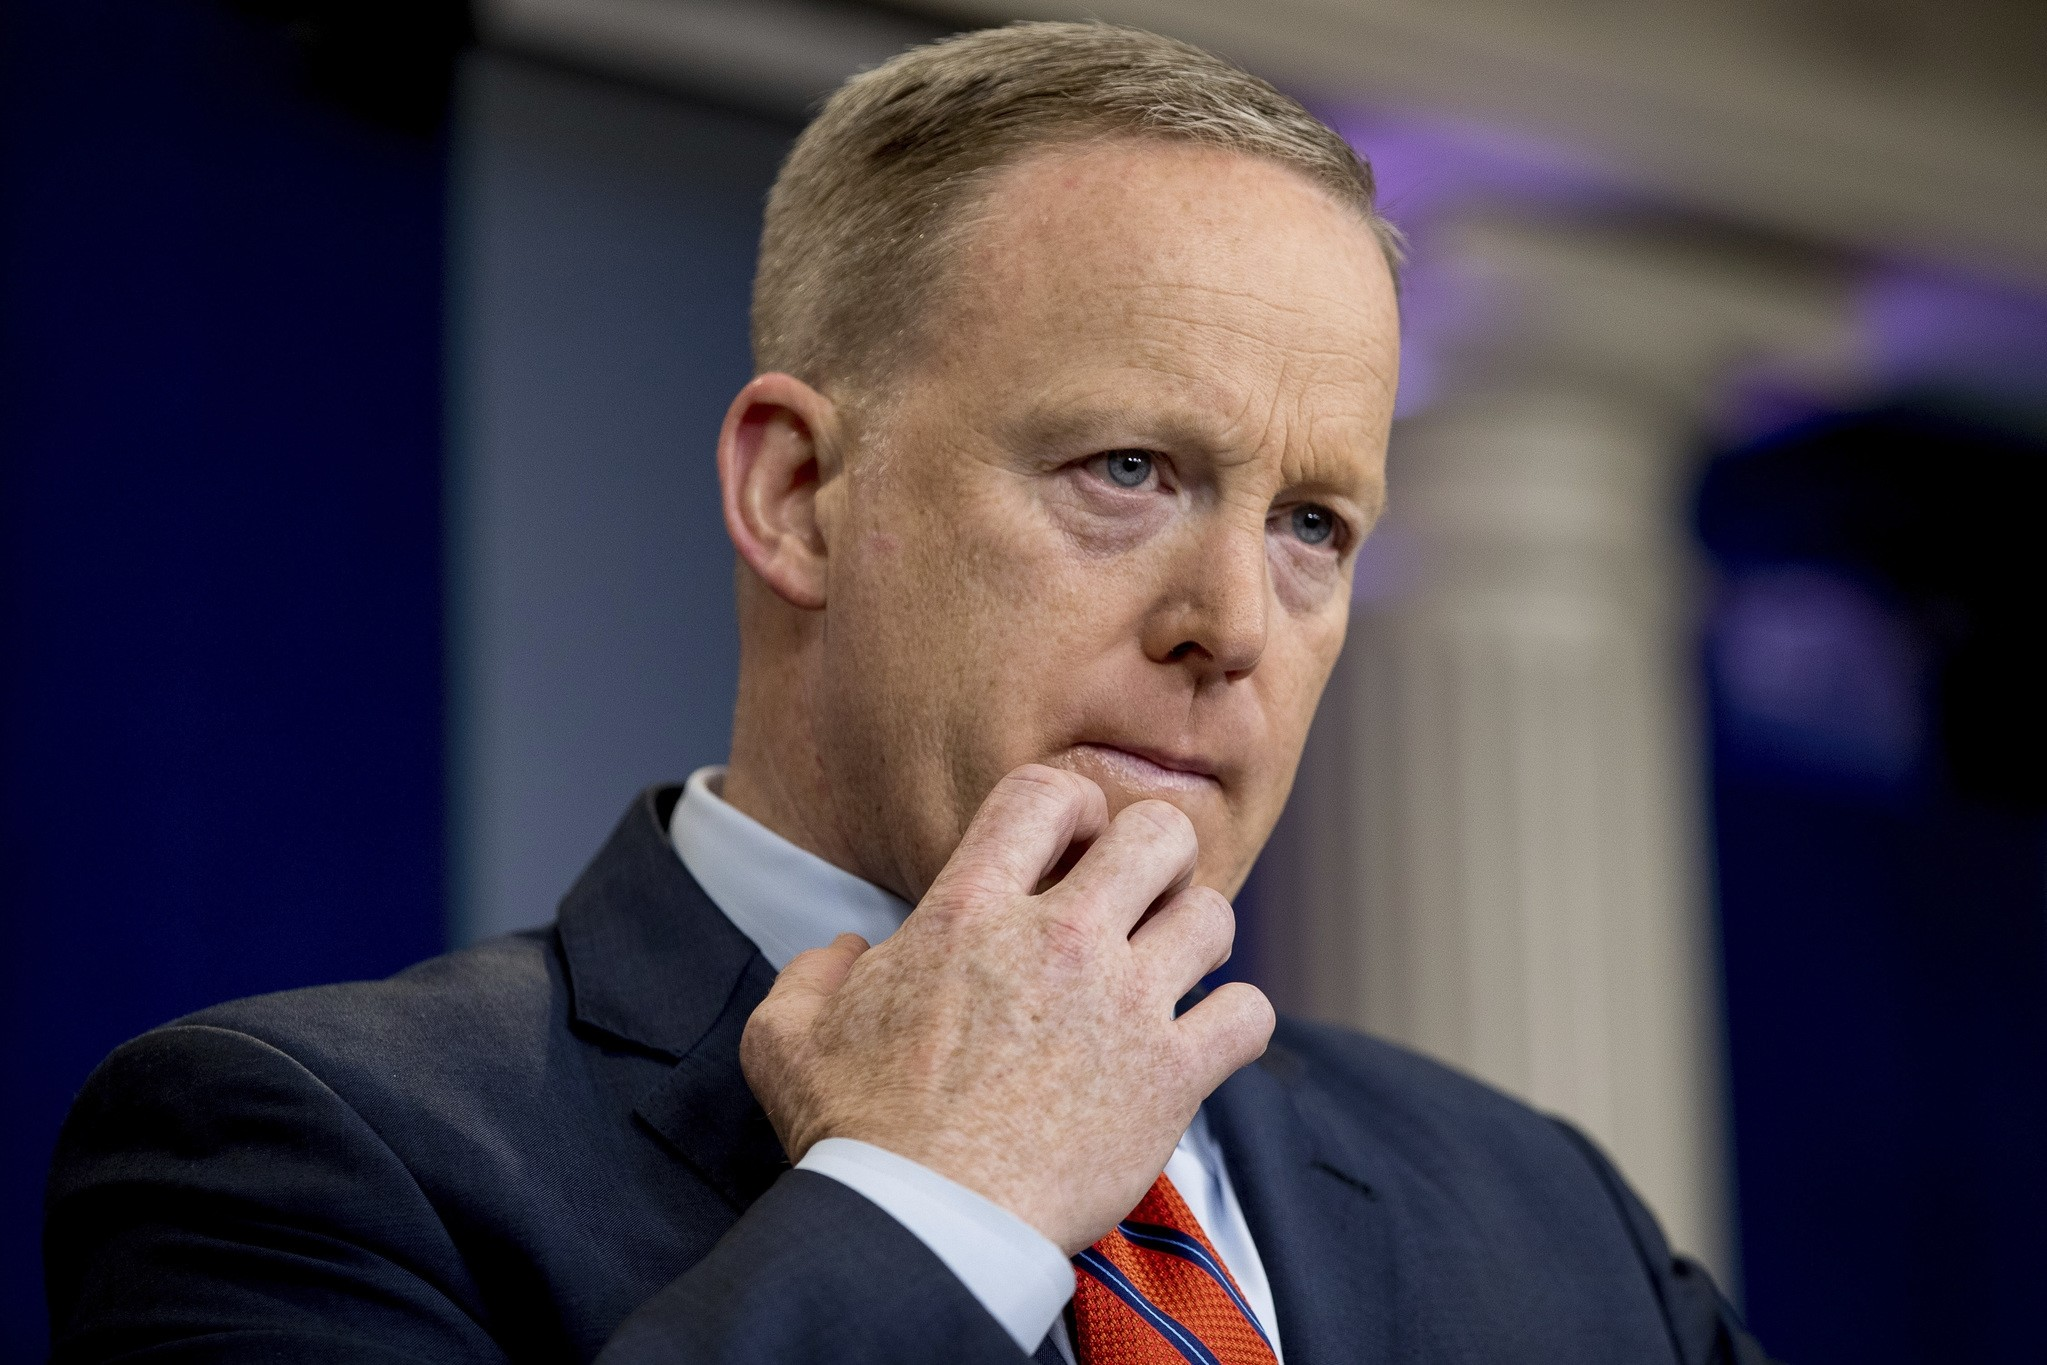 Spicer pauses while talking to the media during the daily press briefing at the White House in Washington, Tuesday, April 11, 2017. (AP Photo)